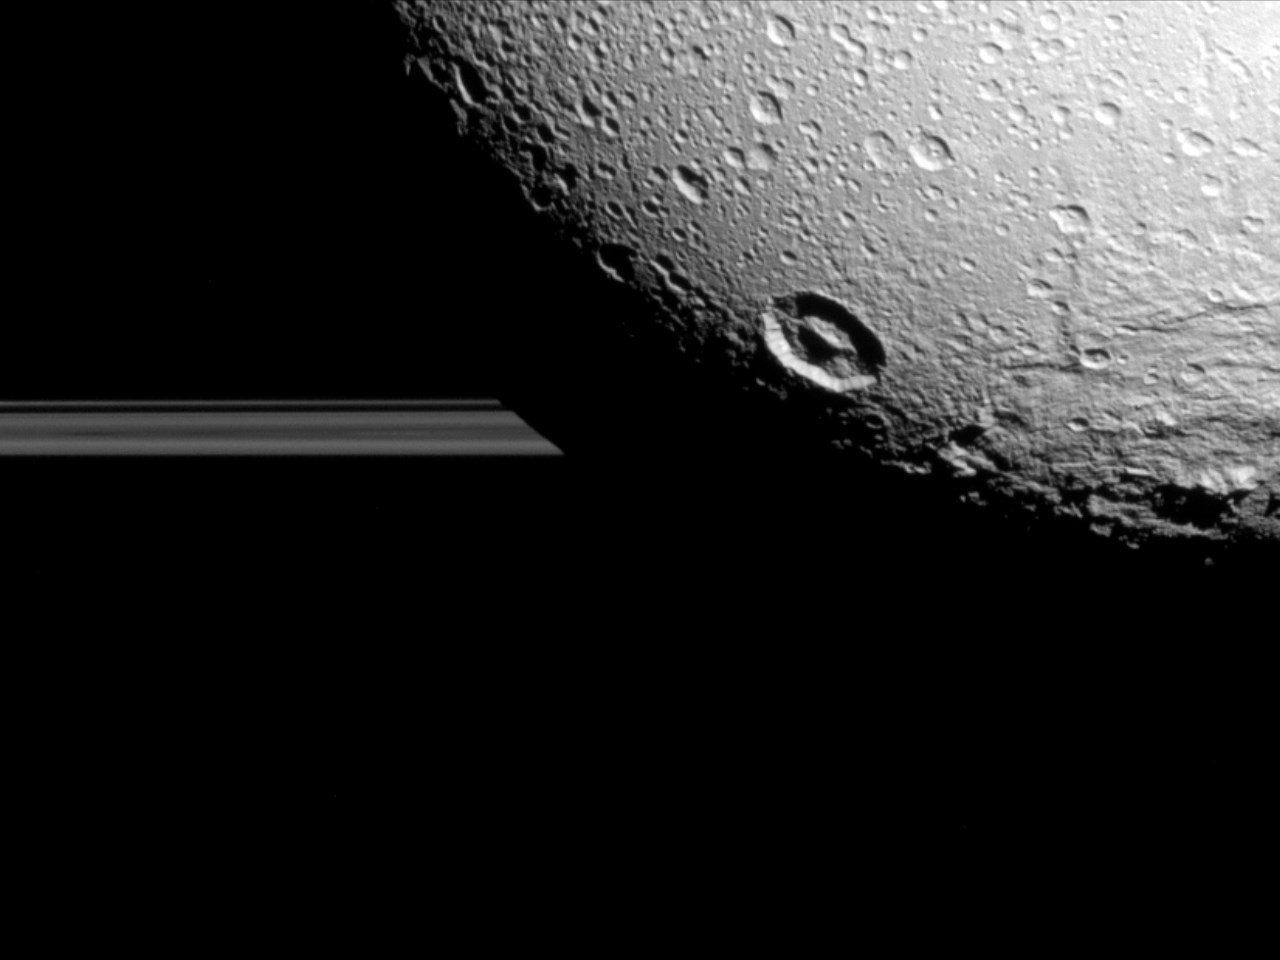 A view of Saturn's rings and it's moon: Dione at a distance of approximately 98 000 miles, Photo Date: August 17, 2015